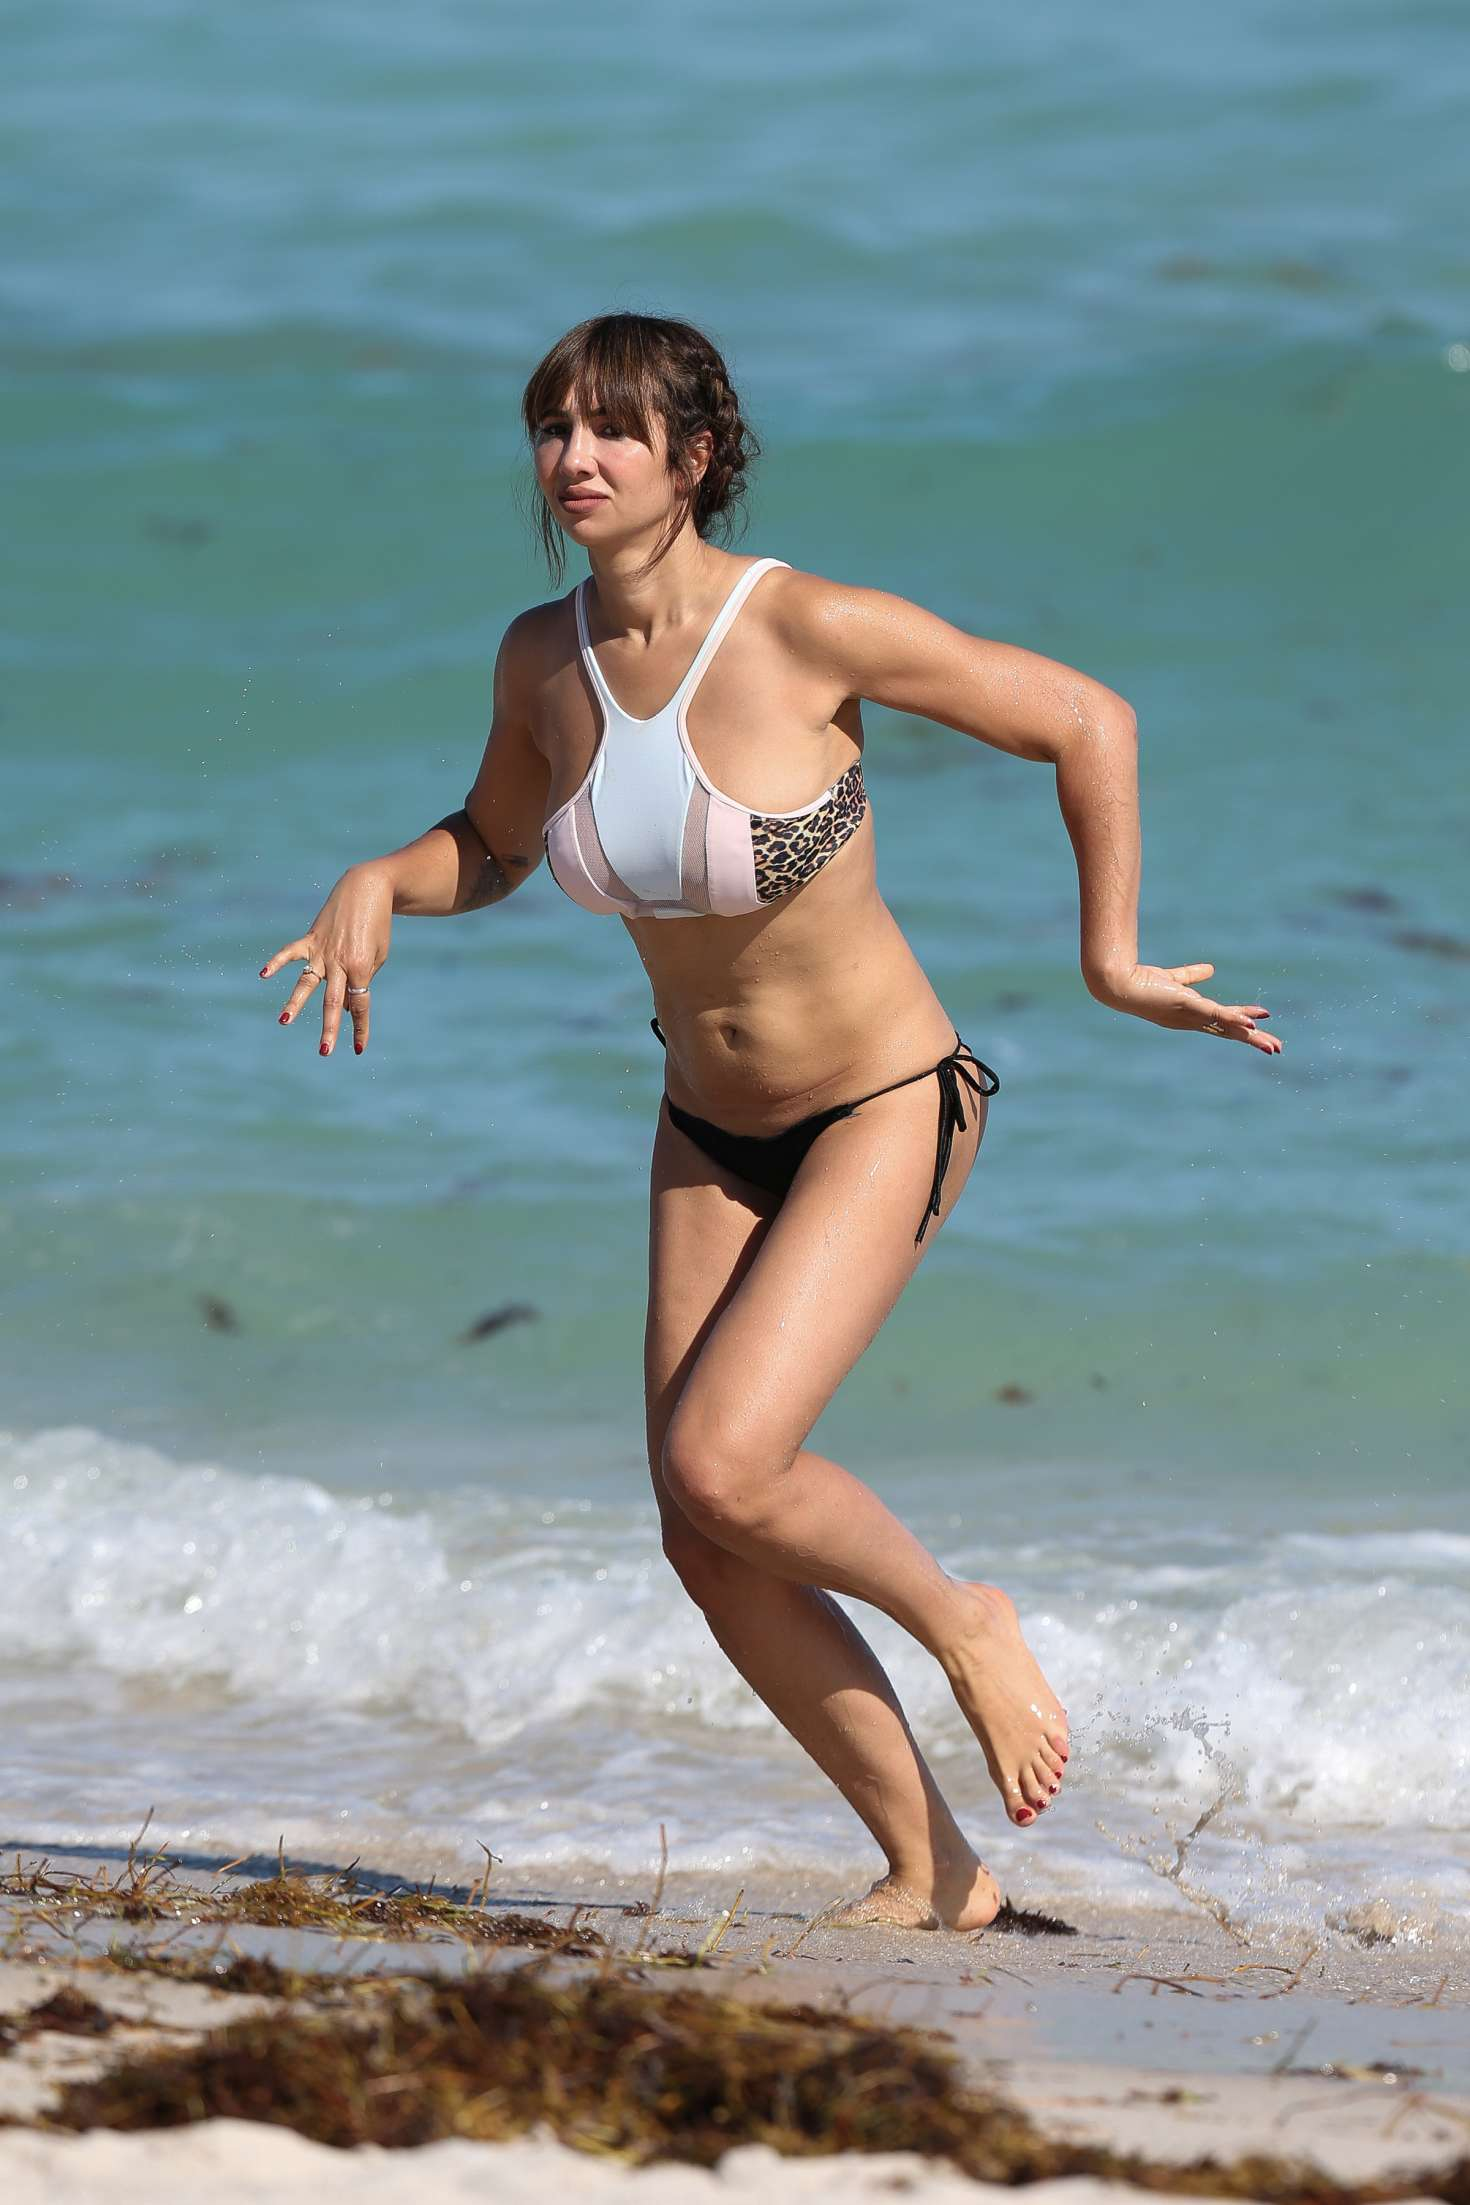 Bikini Jackie Cruz nudes (69 photo), Sexy, Cleavage, Feet, swimsuit 2019